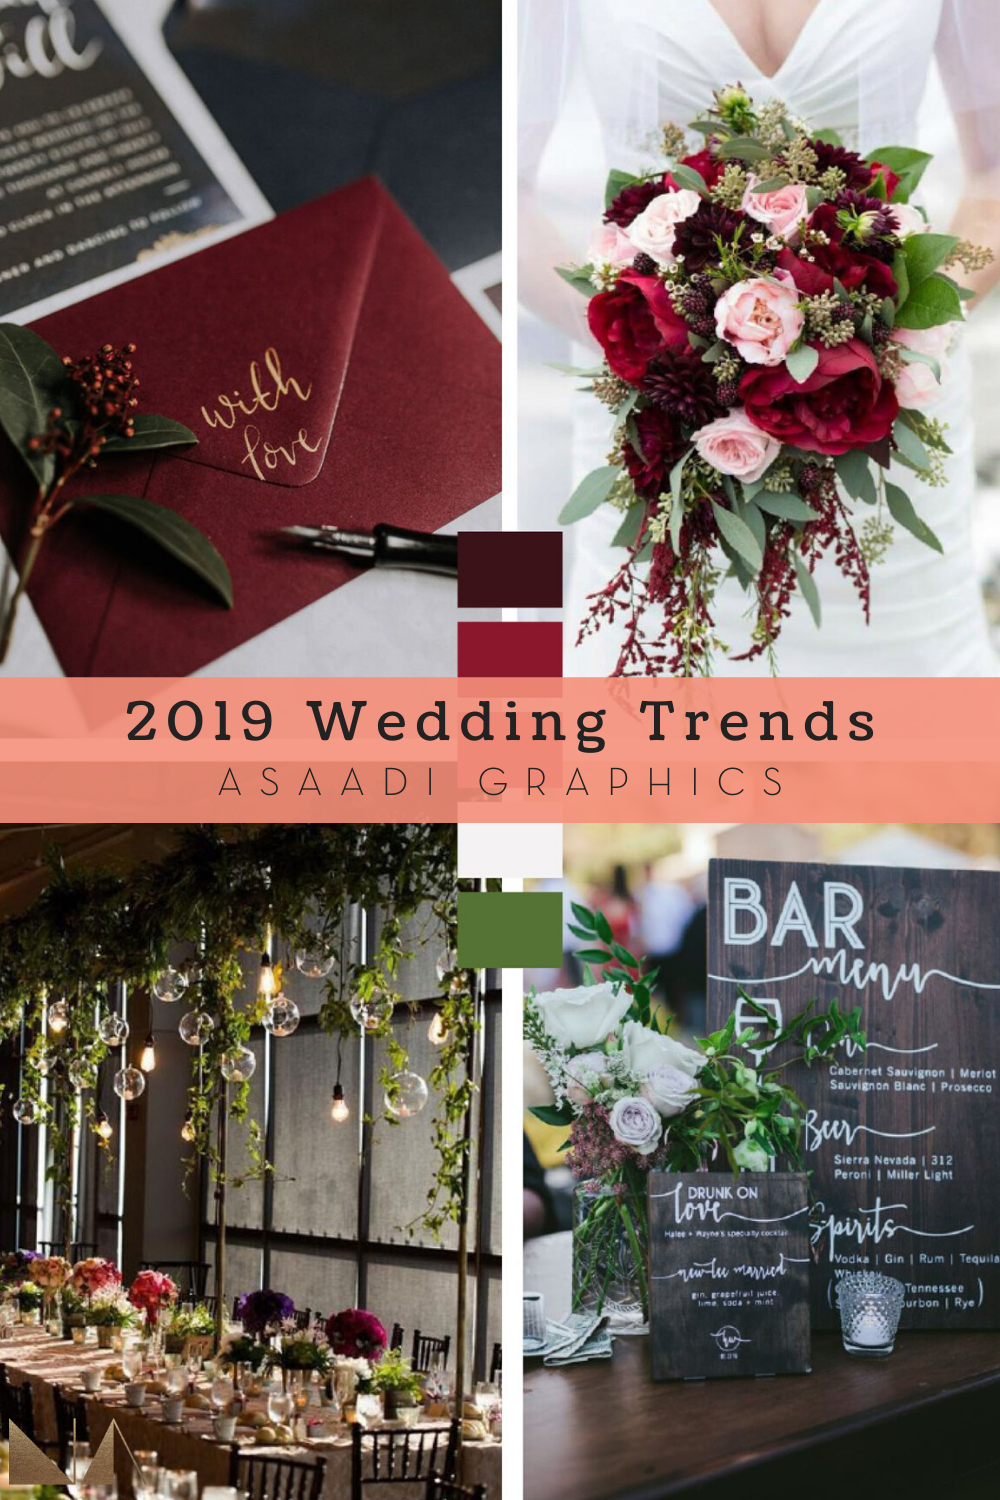 2019 Wedding Trends | Here are insights we collected from 2019 brides & grooms to see if there were any common patterns and trends that may carry over into 2020.